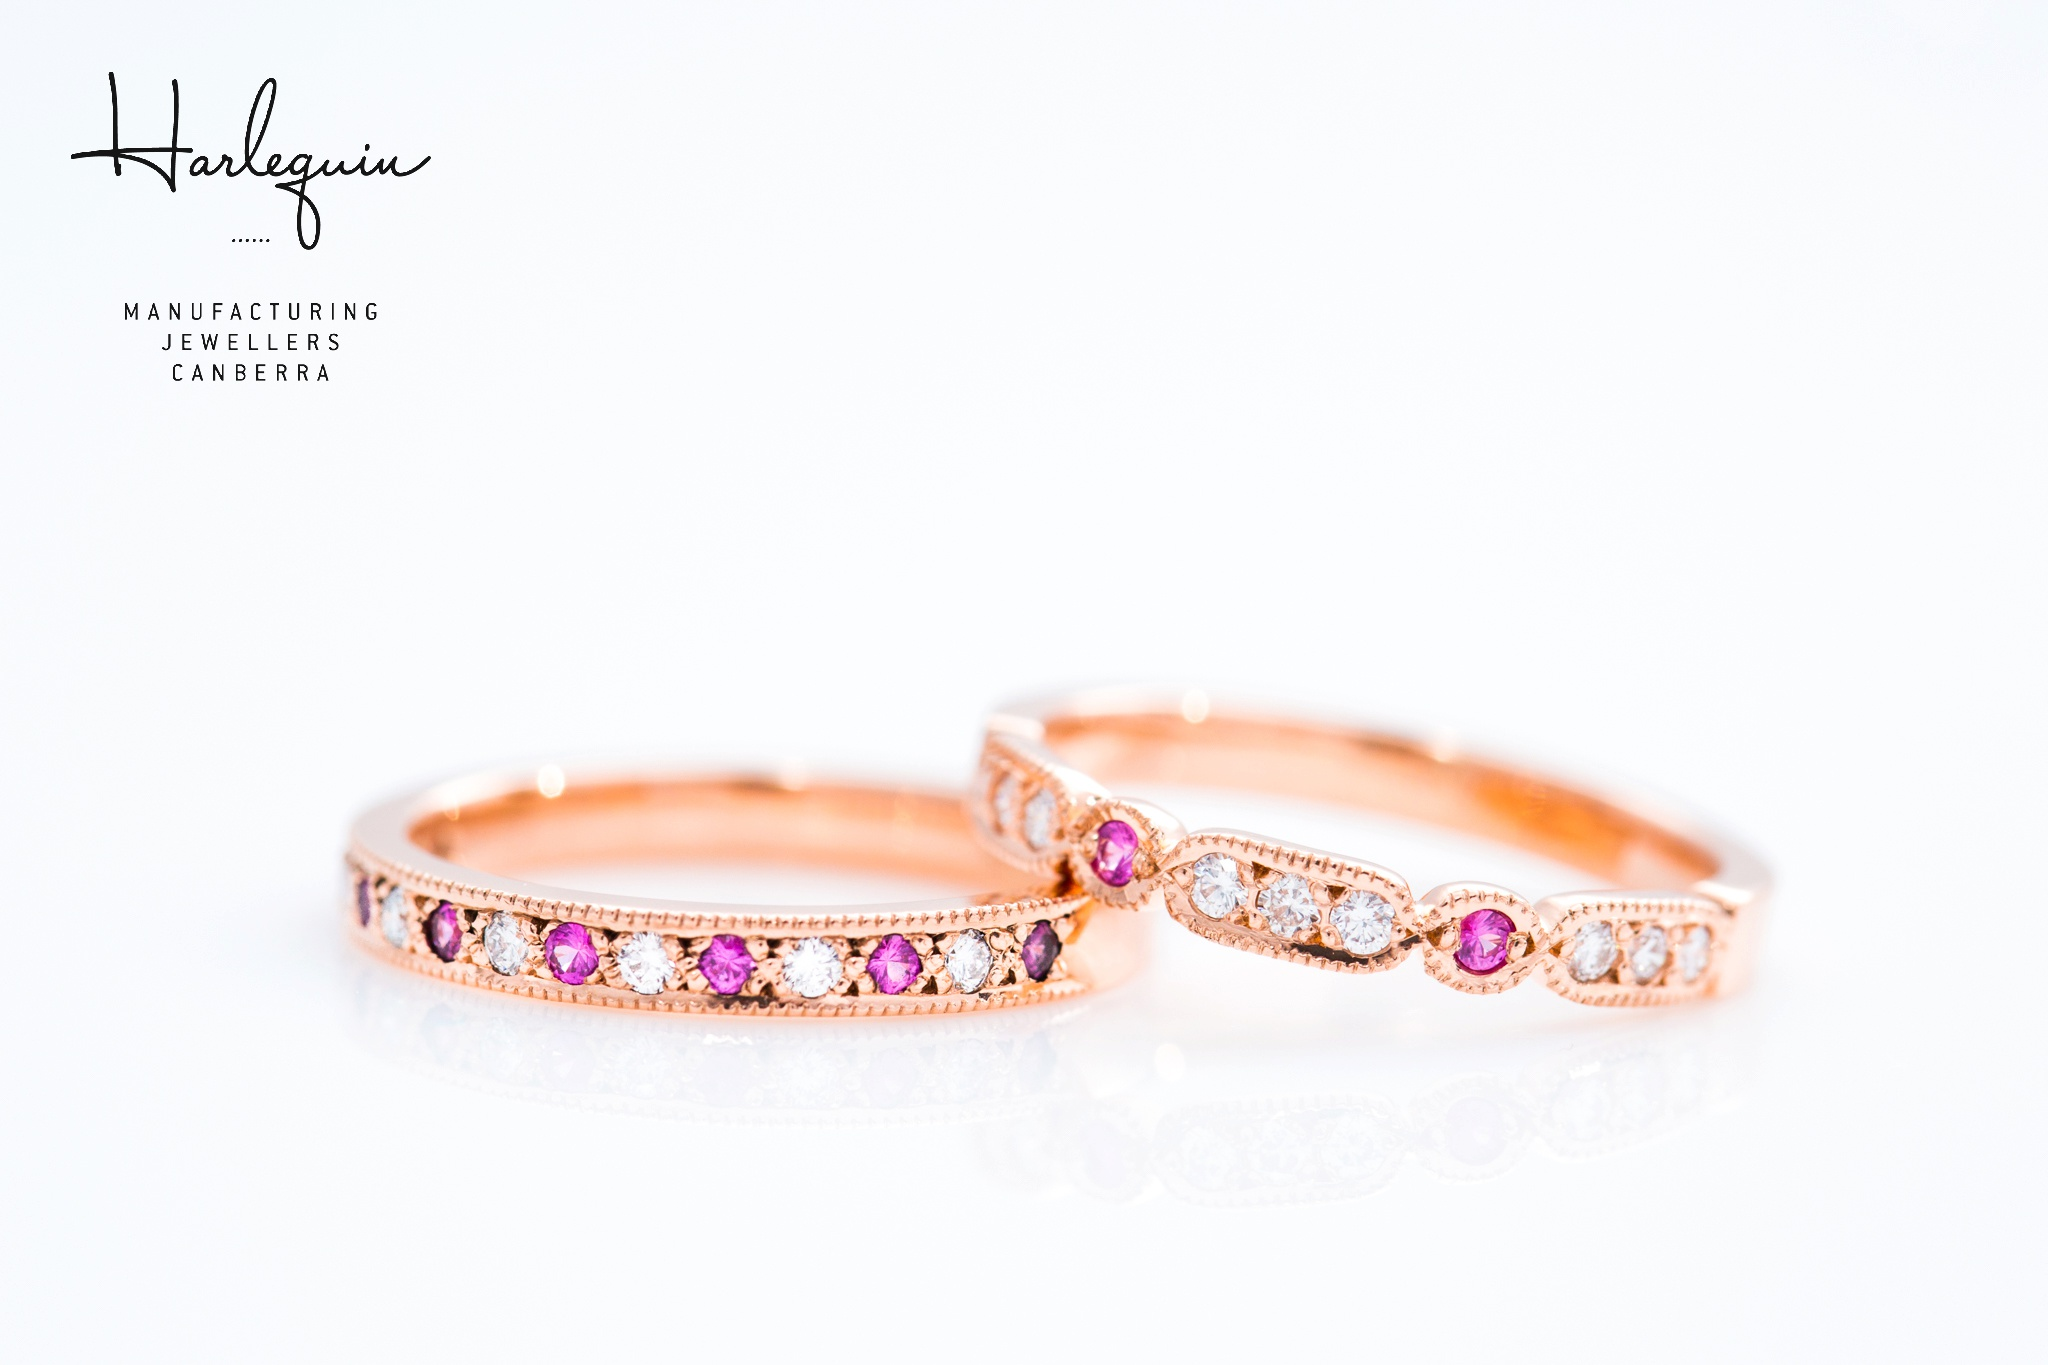 Pink sapphire and diamond wedding and eternity rings with custom shaping - Harlequin Jewellers Canberra